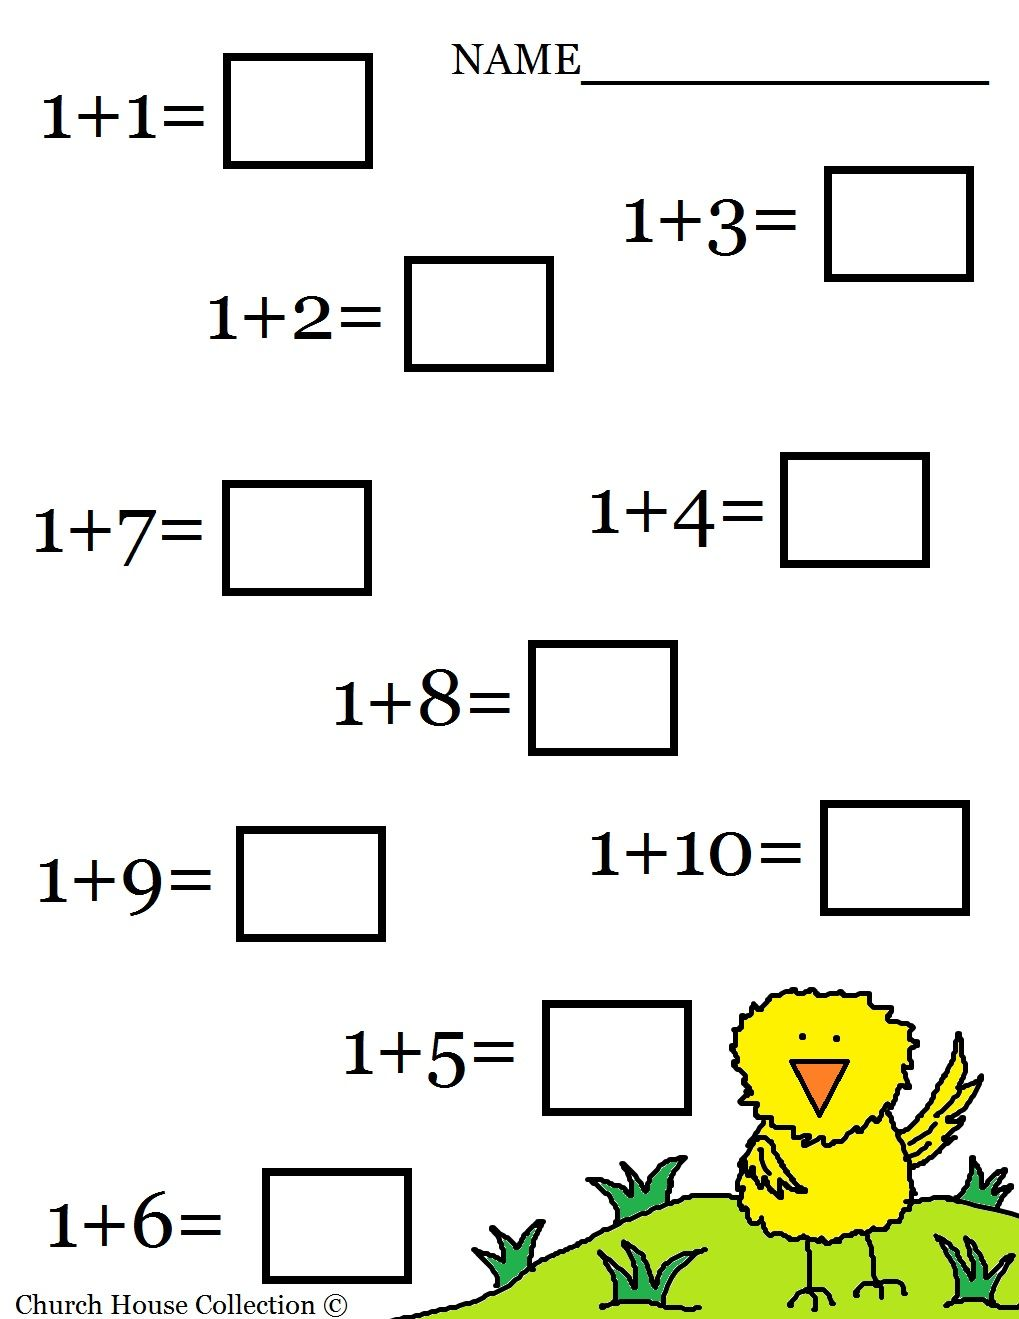 Aldiablosus  Splendid  Images About Worksheets  Math On Pinterest  Math Sheets  With Interesting  Images About Worksheets  Math On Pinterest  Math Sheets Math Worksheets For Kindergarten And Simple Addition With Astonishing Simplest Form Worksheet Also Two Step Word Problems Rd Grade Worksheets In Addition How To Write A Sonnet Worksheet And Free Kindergarten Writing Worksheets As Well As Simile Worksheet Pdf Additionally Main Idea And Supporting Details Worksheets Th Grade From Pinterestcom With Aldiablosus  Interesting  Images About Worksheets  Math On Pinterest  Math Sheets  With Astonishing  Images About Worksheets  Math On Pinterest  Math Sheets Math Worksheets For Kindergarten And Simple Addition And Splendid Simplest Form Worksheet Also Two Step Word Problems Rd Grade Worksheets In Addition How To Write A Sonnet Worksheet From Pinterestcom